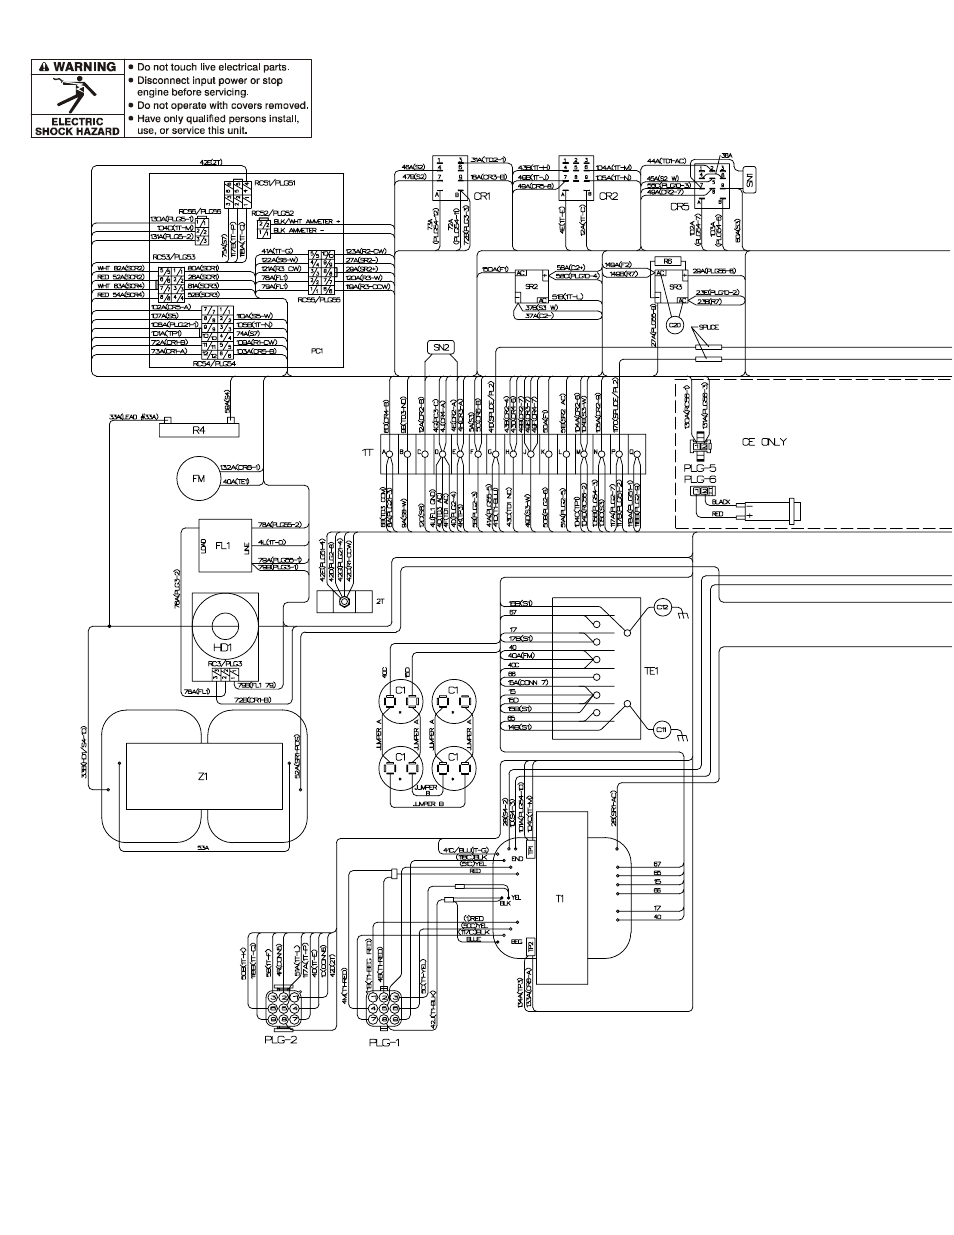 hight resolution of miller 250 wiring diagram wiring diagram database miller bobcat 225g plus wiring diagram miller bobcat wiring diagram